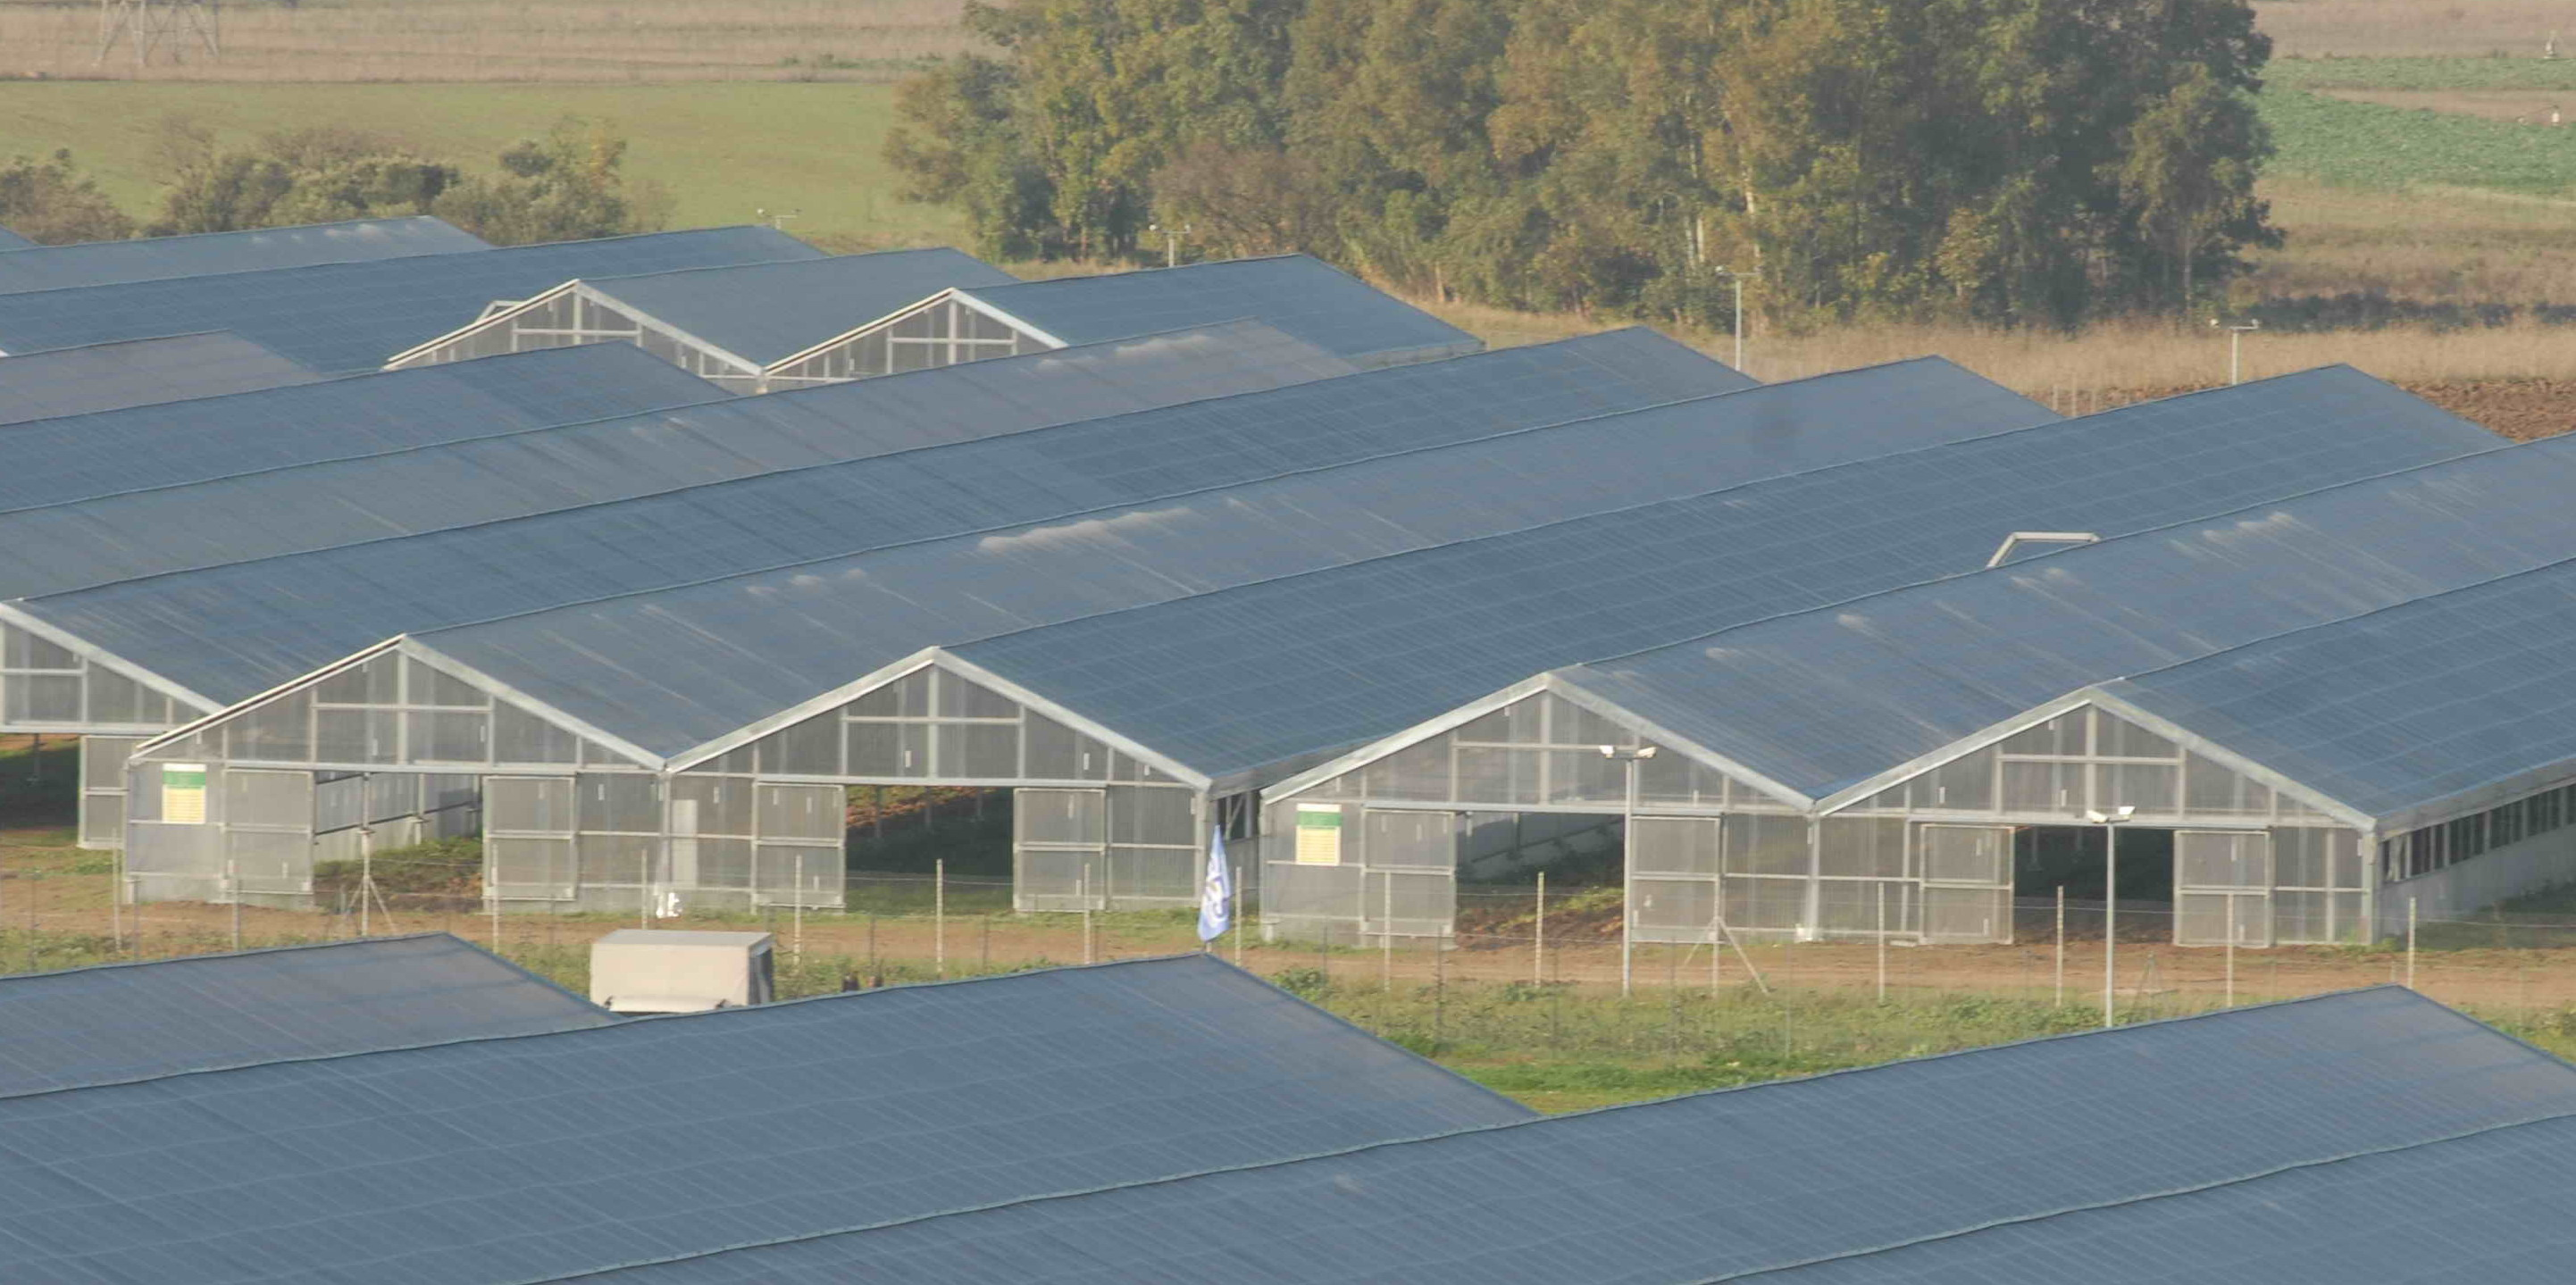 Ingeteam is taking part in the largest PV greenhouse in the world